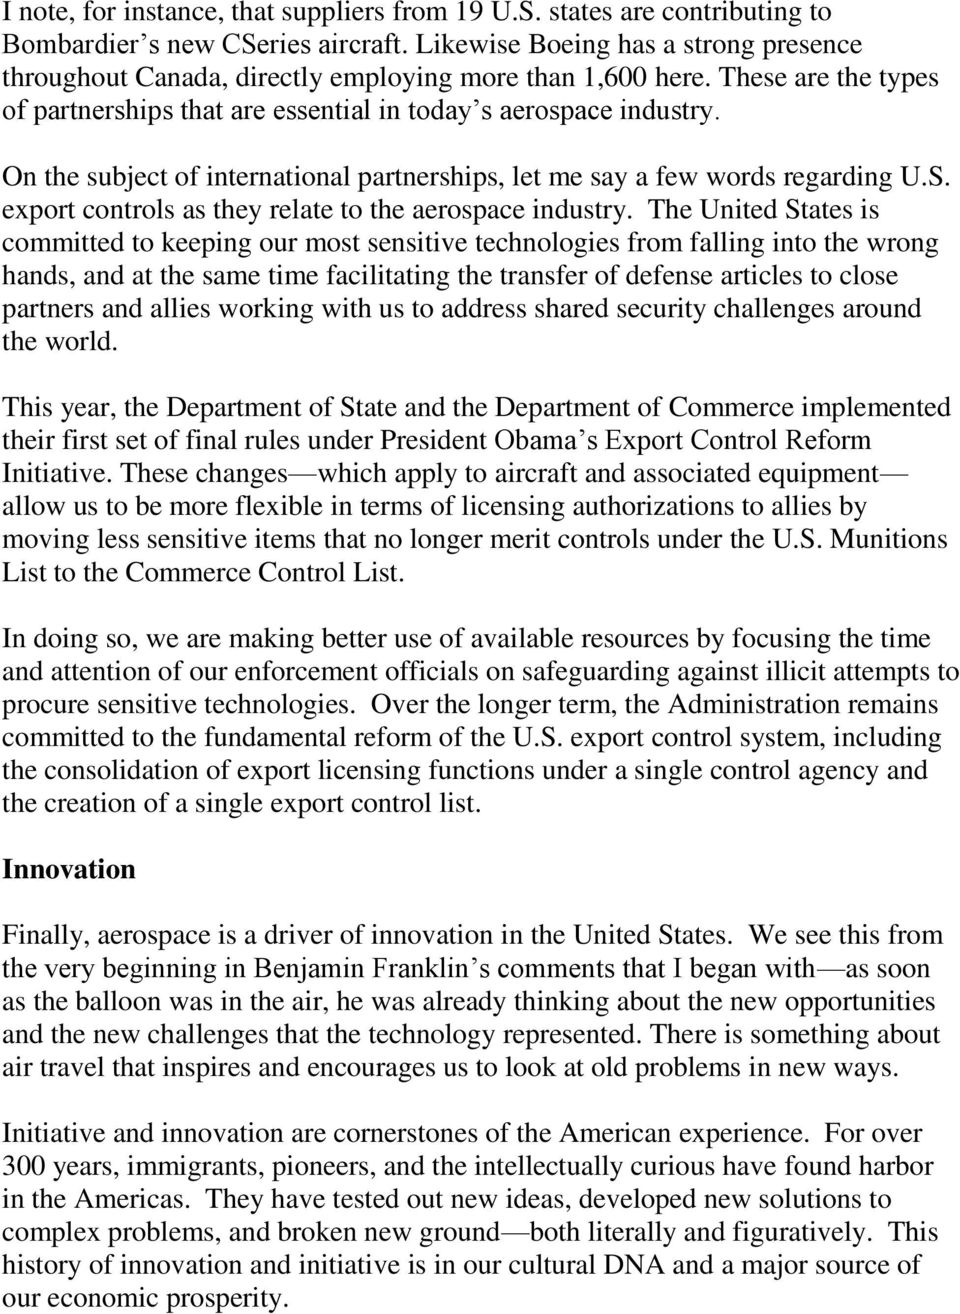 On the subject of international partnerships, let me say a few words regarding U.S. export controls as they relate to the aerospace industry.